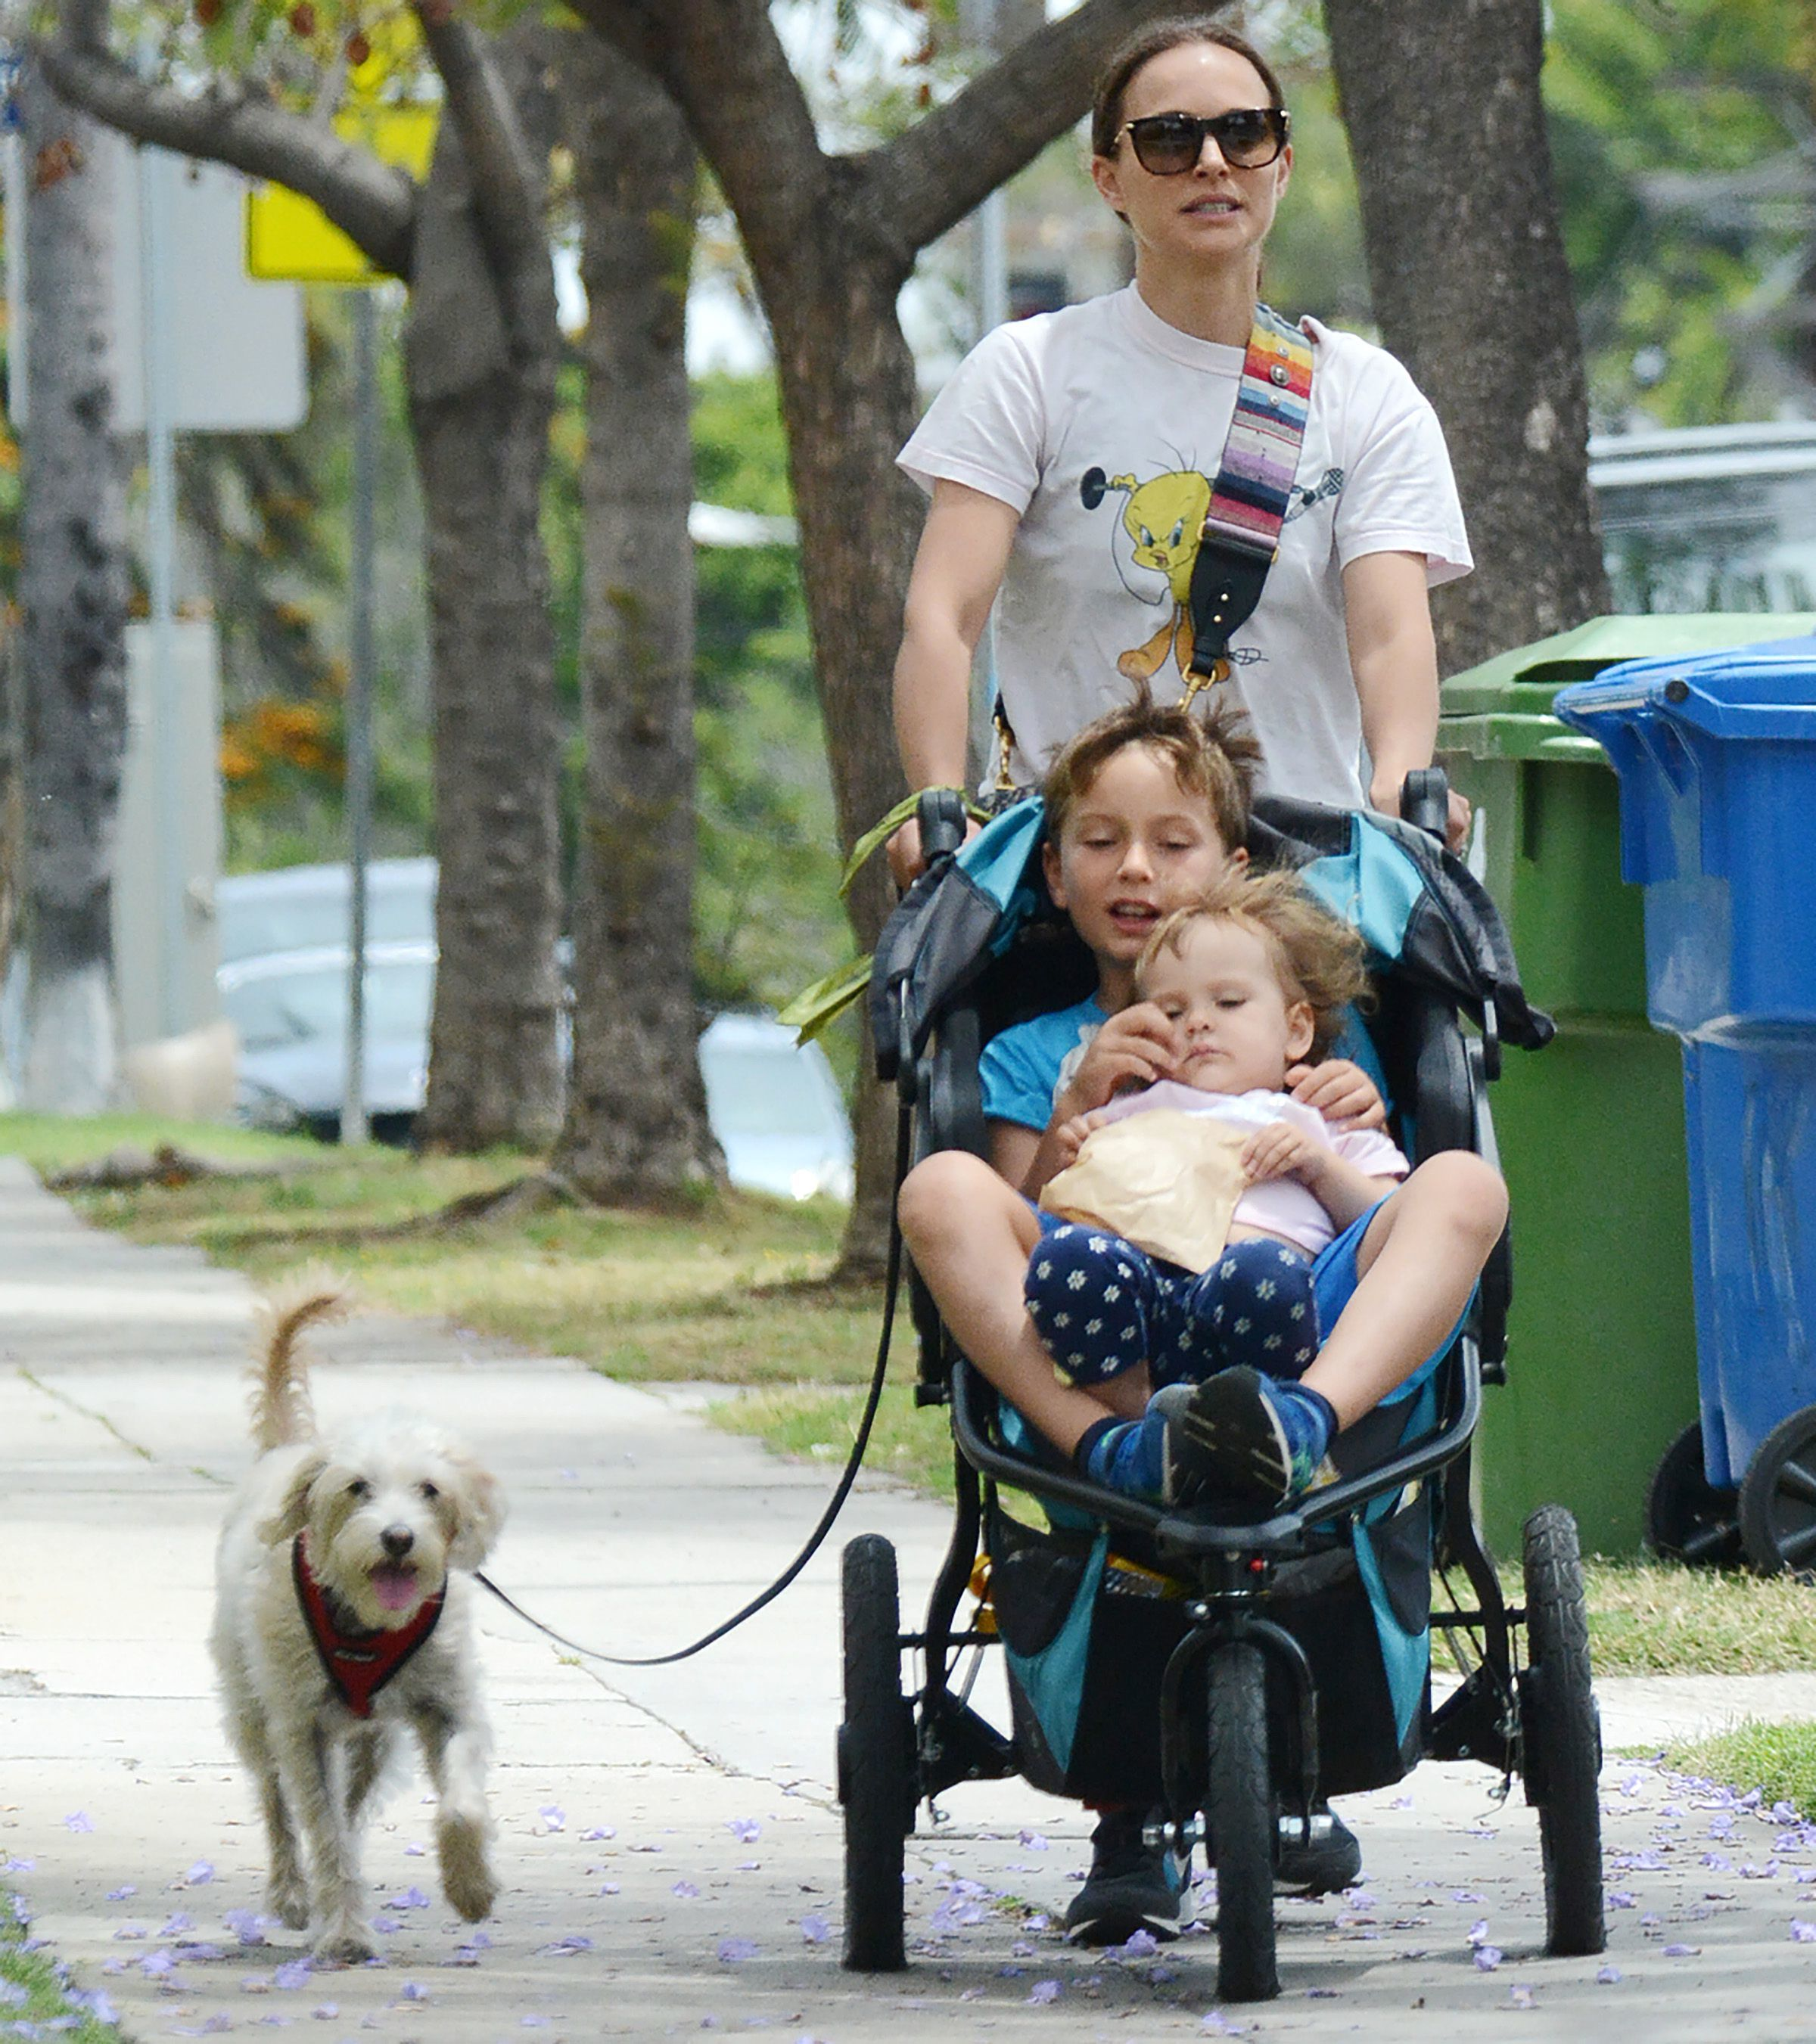 Natalie Portman goes for a walk with her dog and kids Aleph and Amalia Portman Millepied in Los Angeles on May 19, 2019.